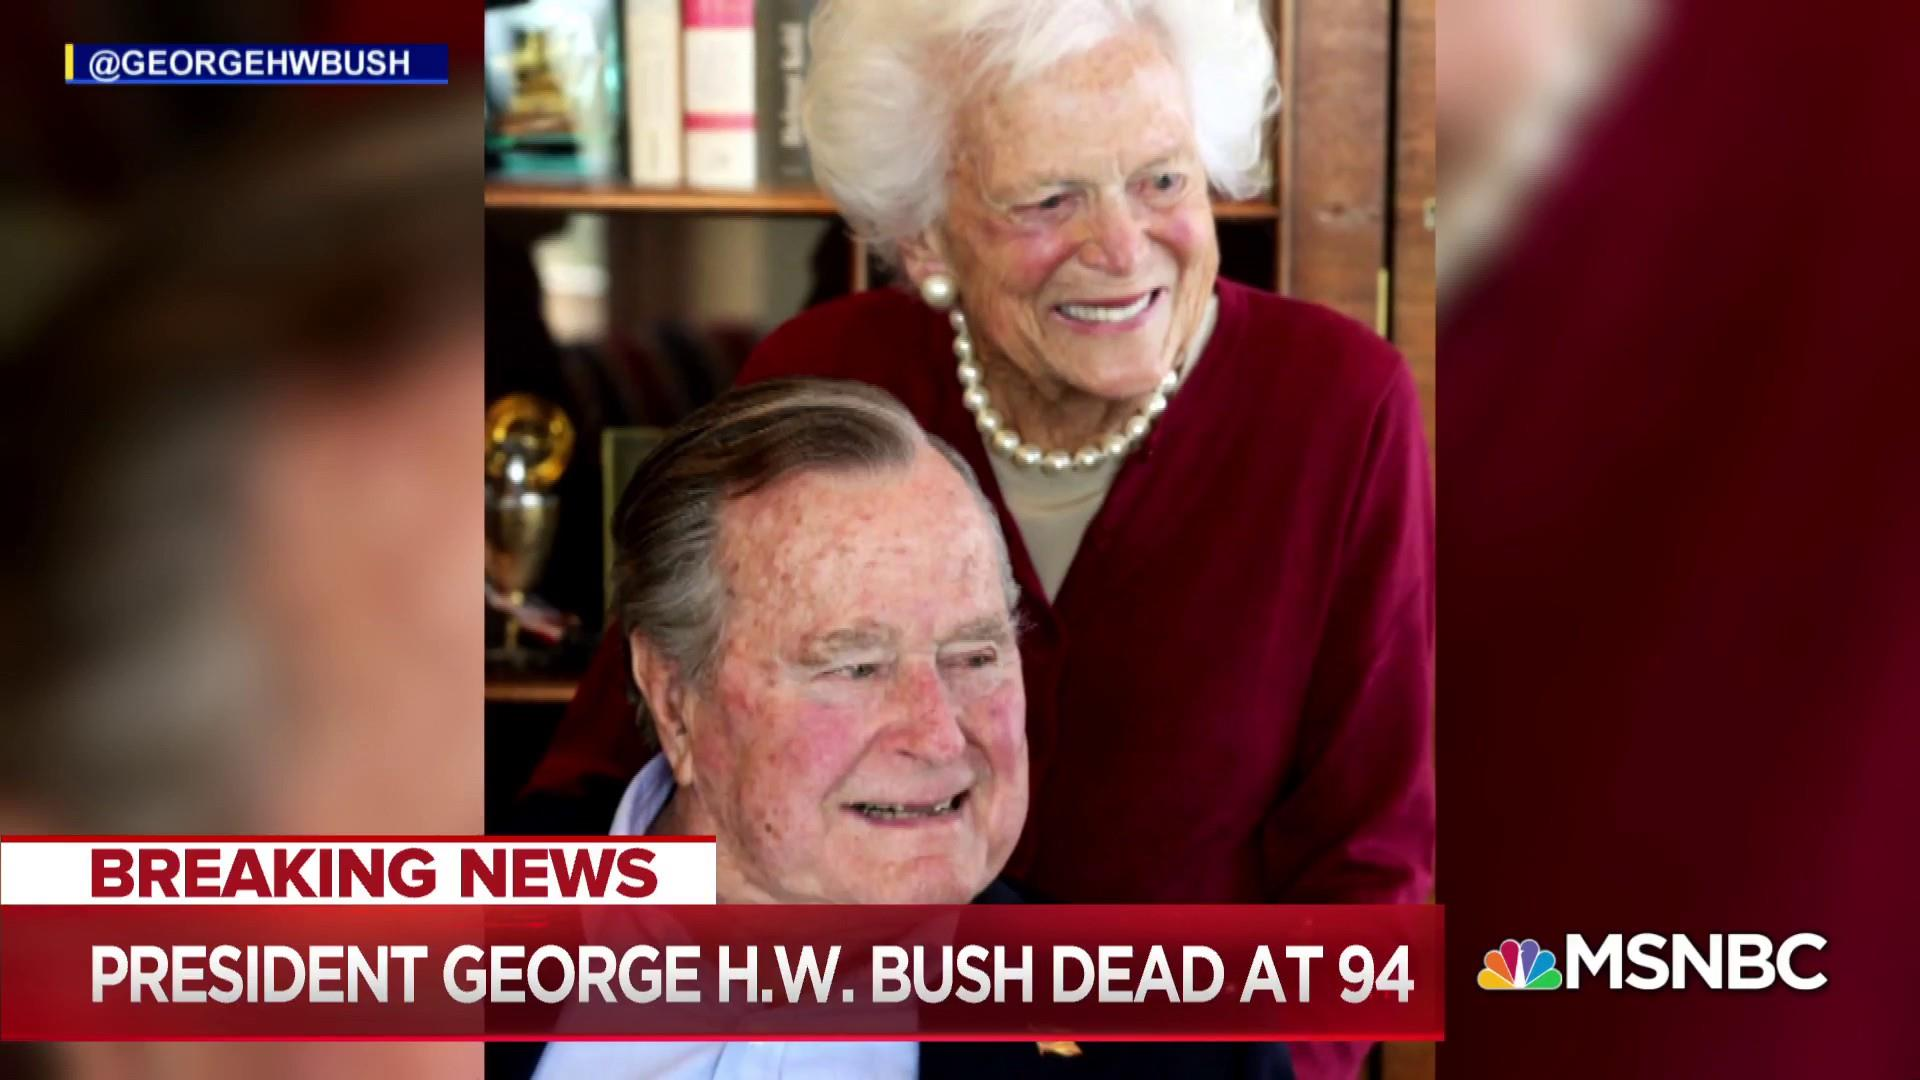 Andrea Mitchell: I think history will be very kind to George H.W. Bush.